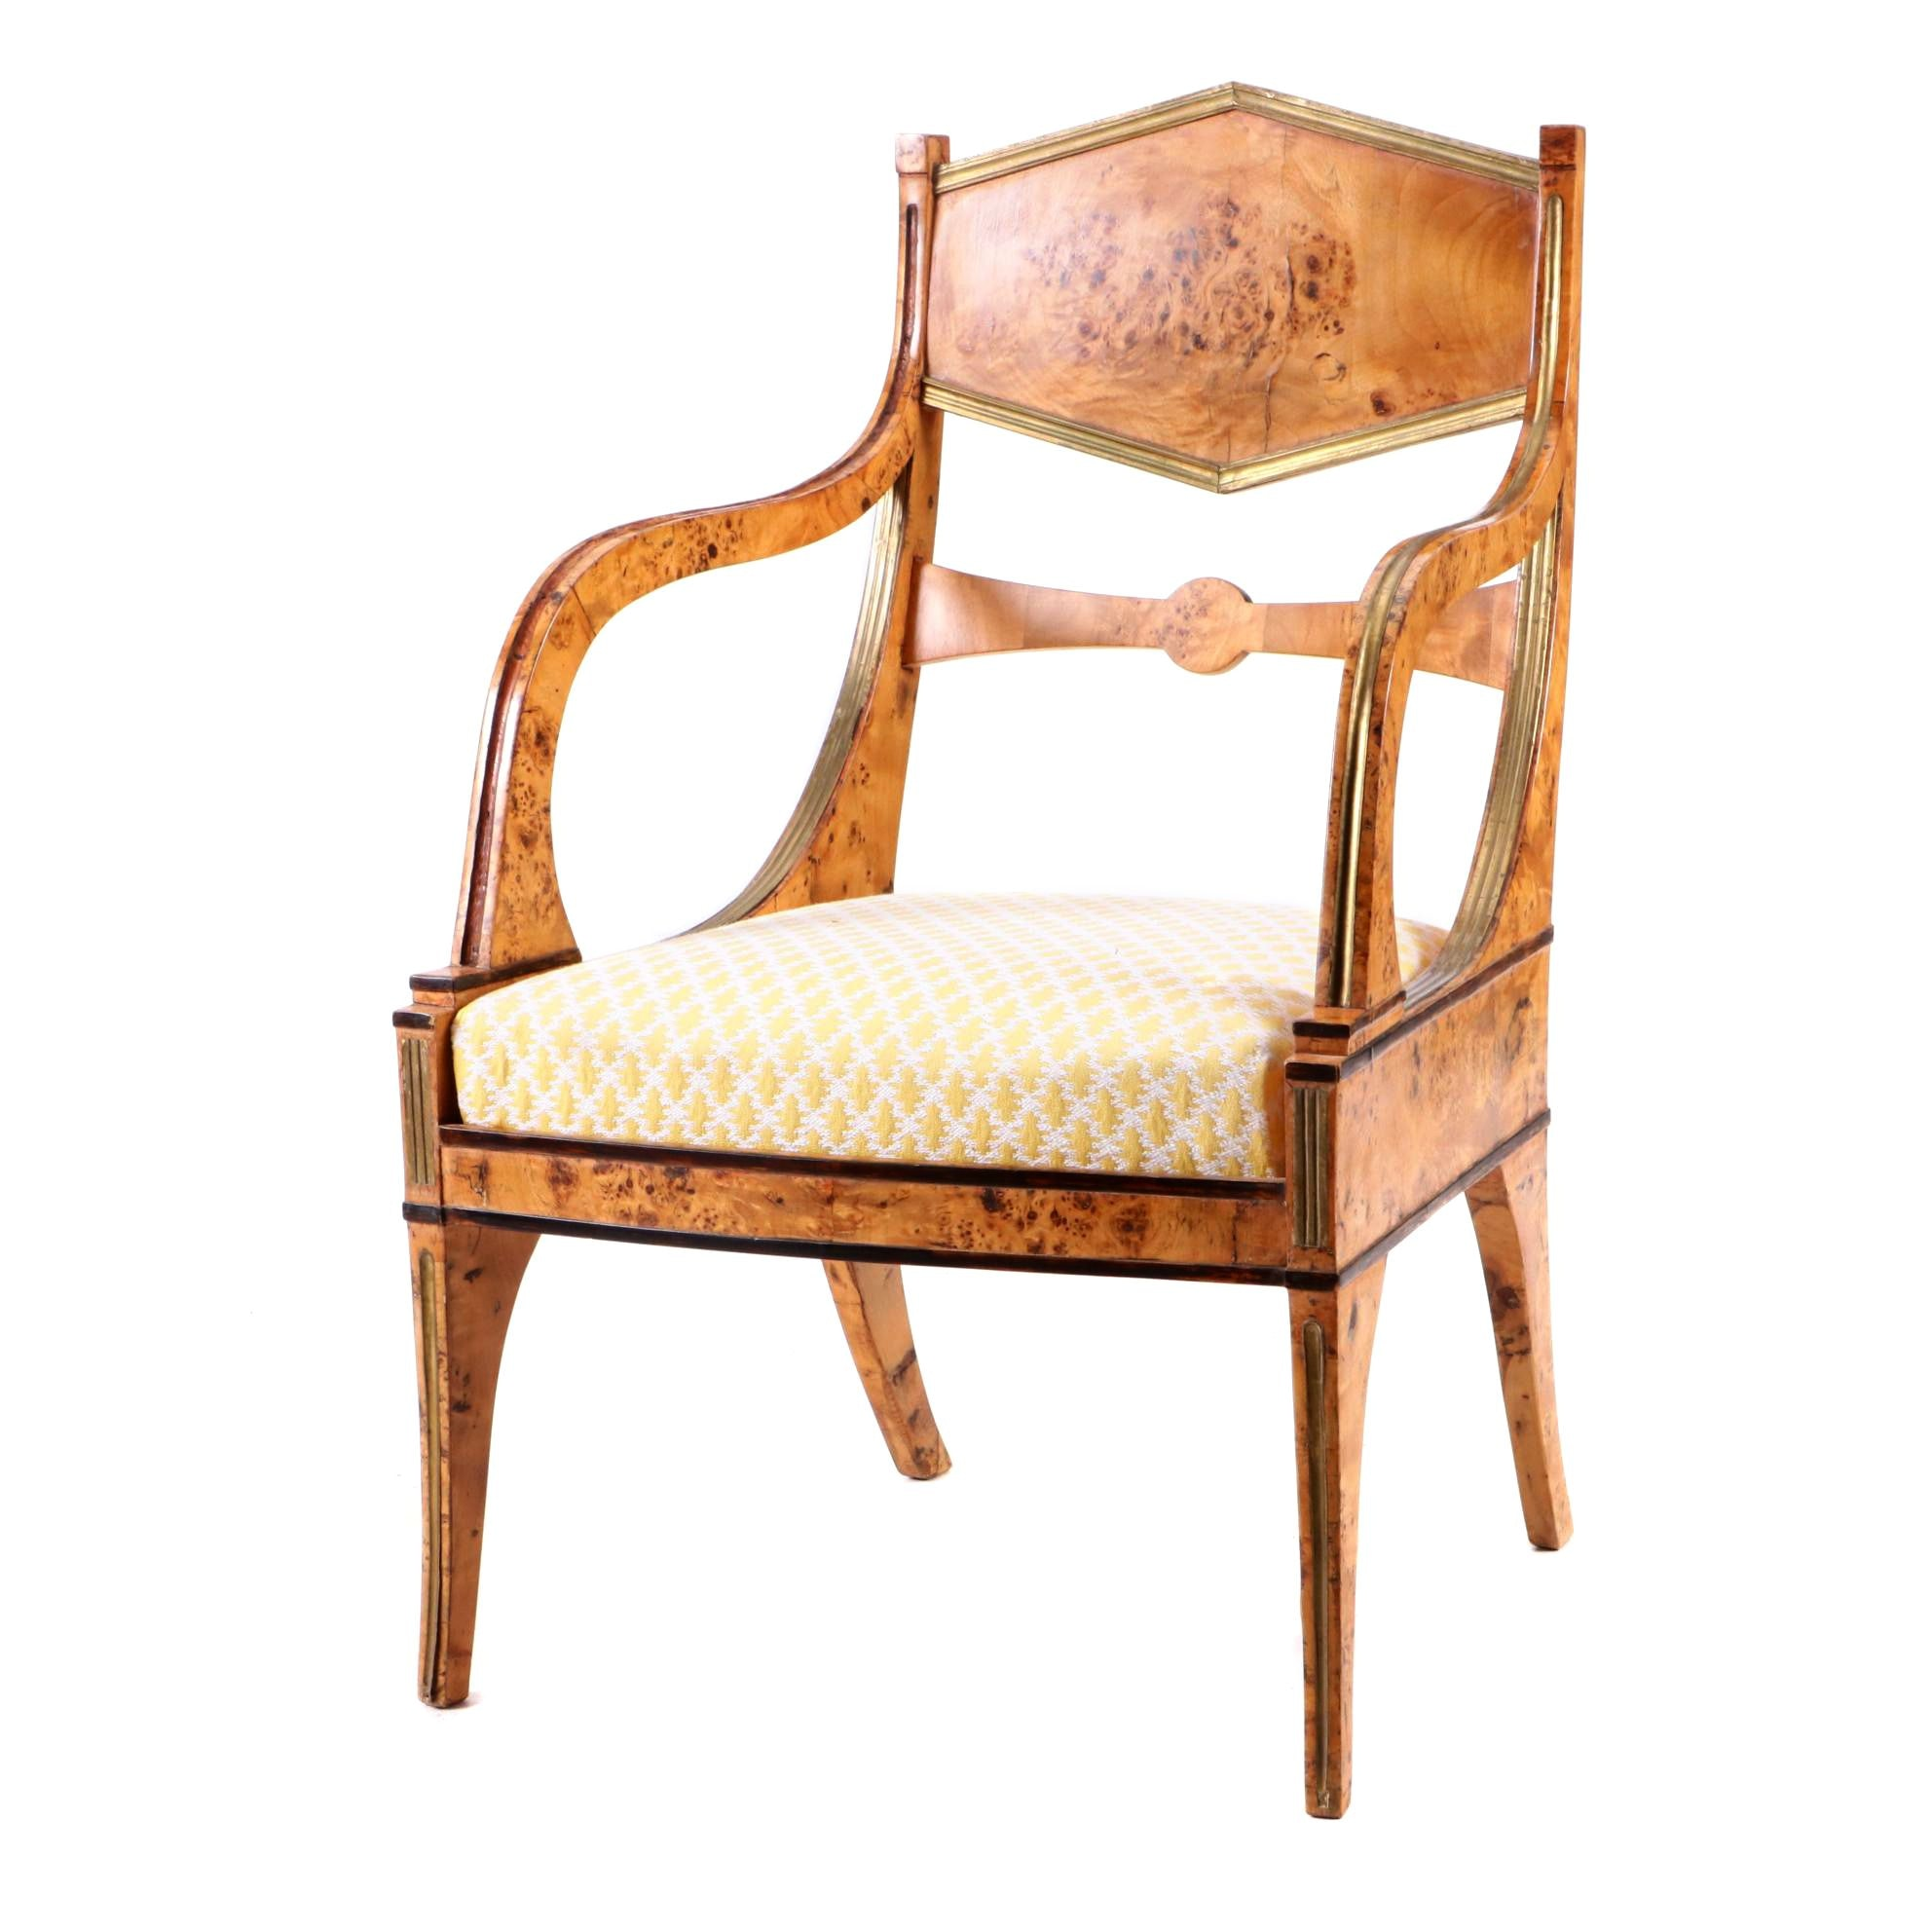 Russian or Baltic Empire Armchair